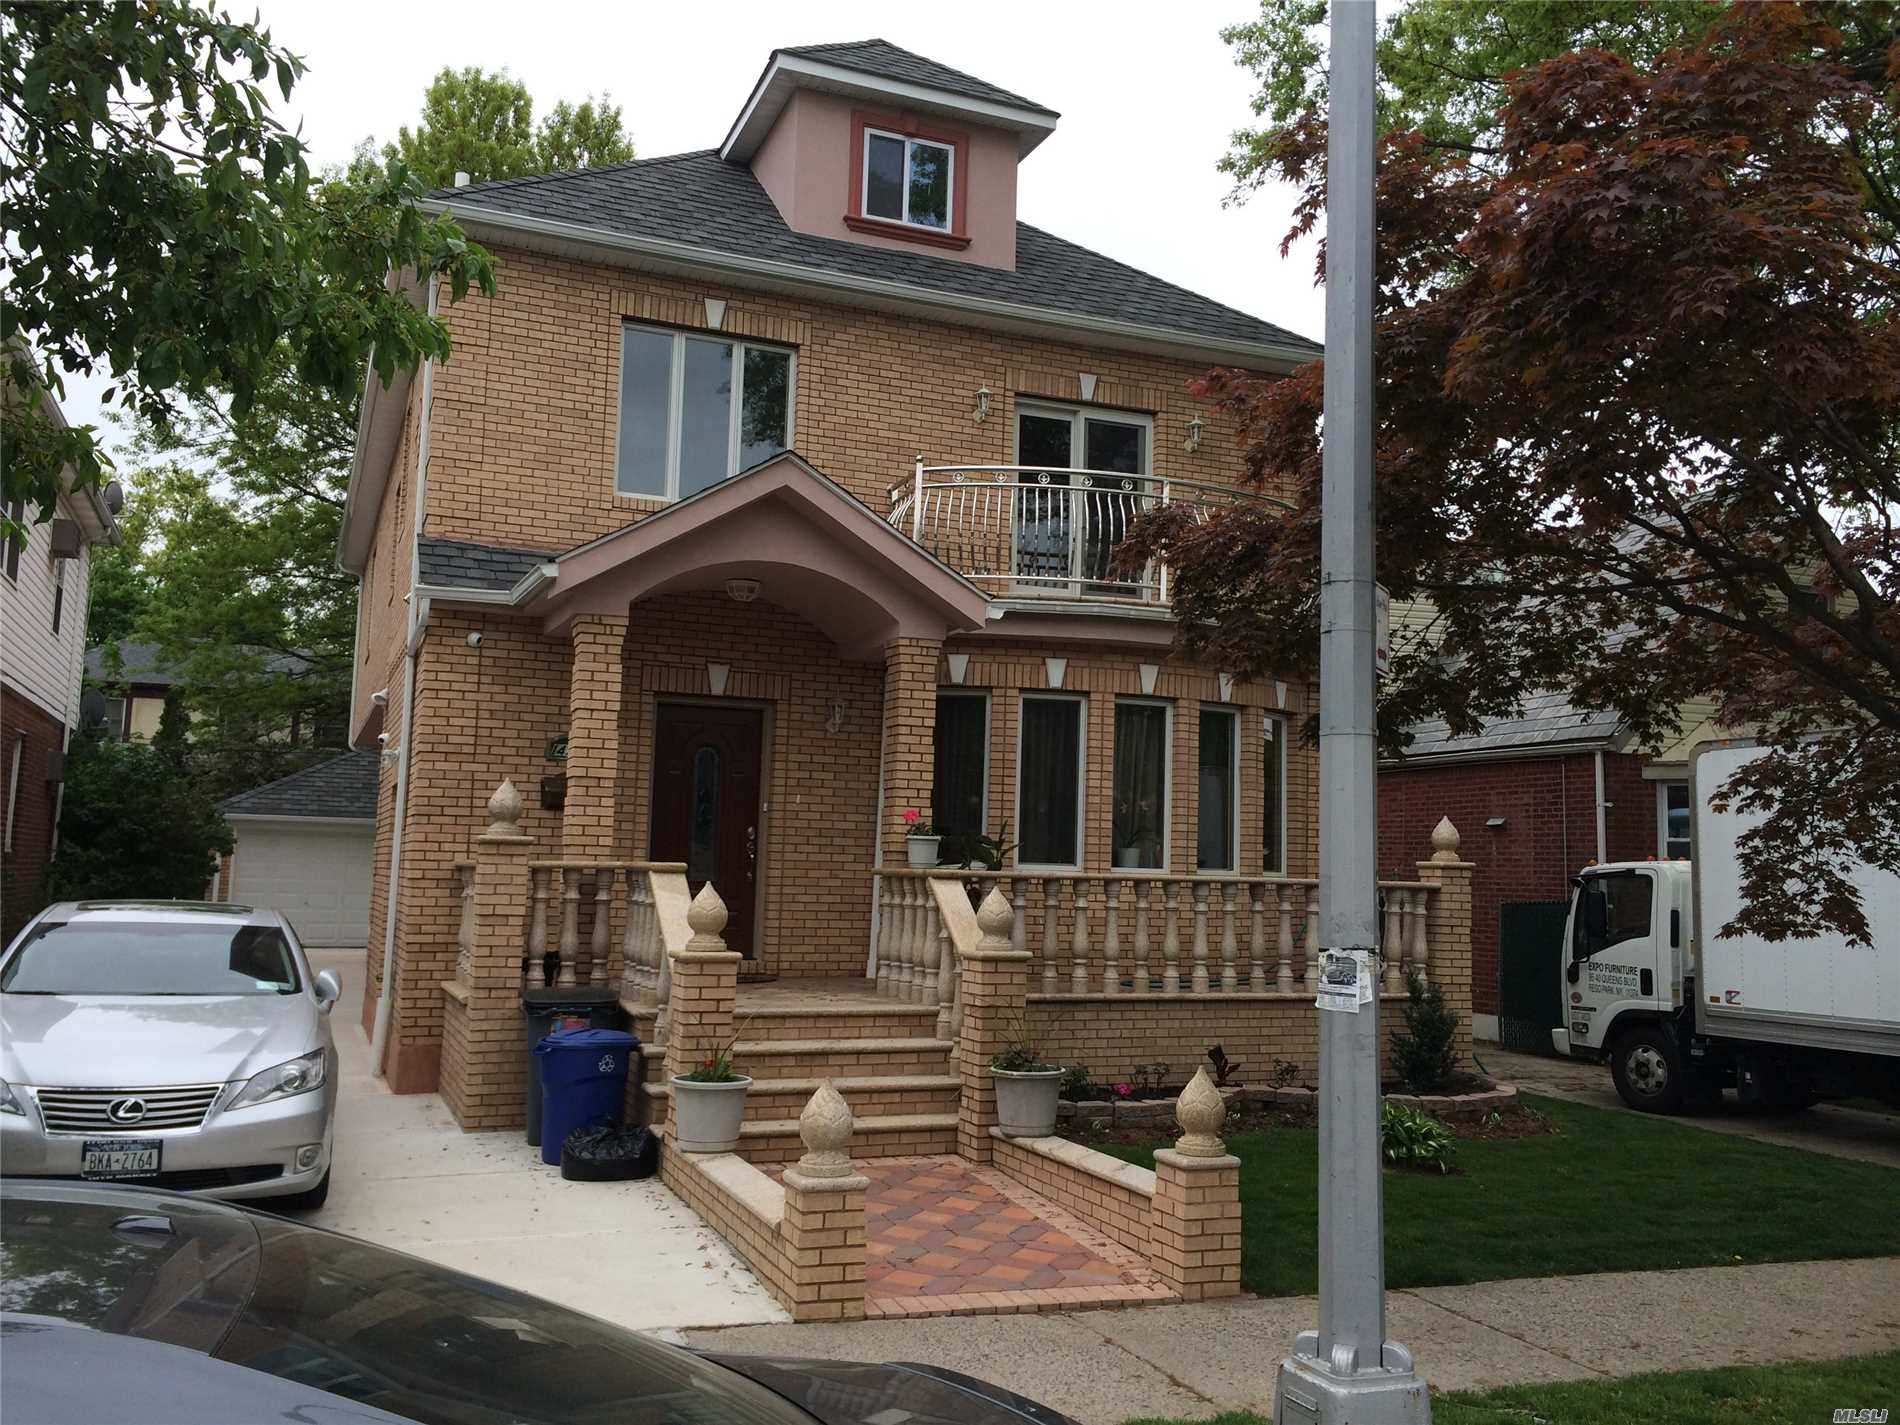 One Br With Living Room, Kitchen, 1 Full Bath, Balcony. Bright, Close To All.